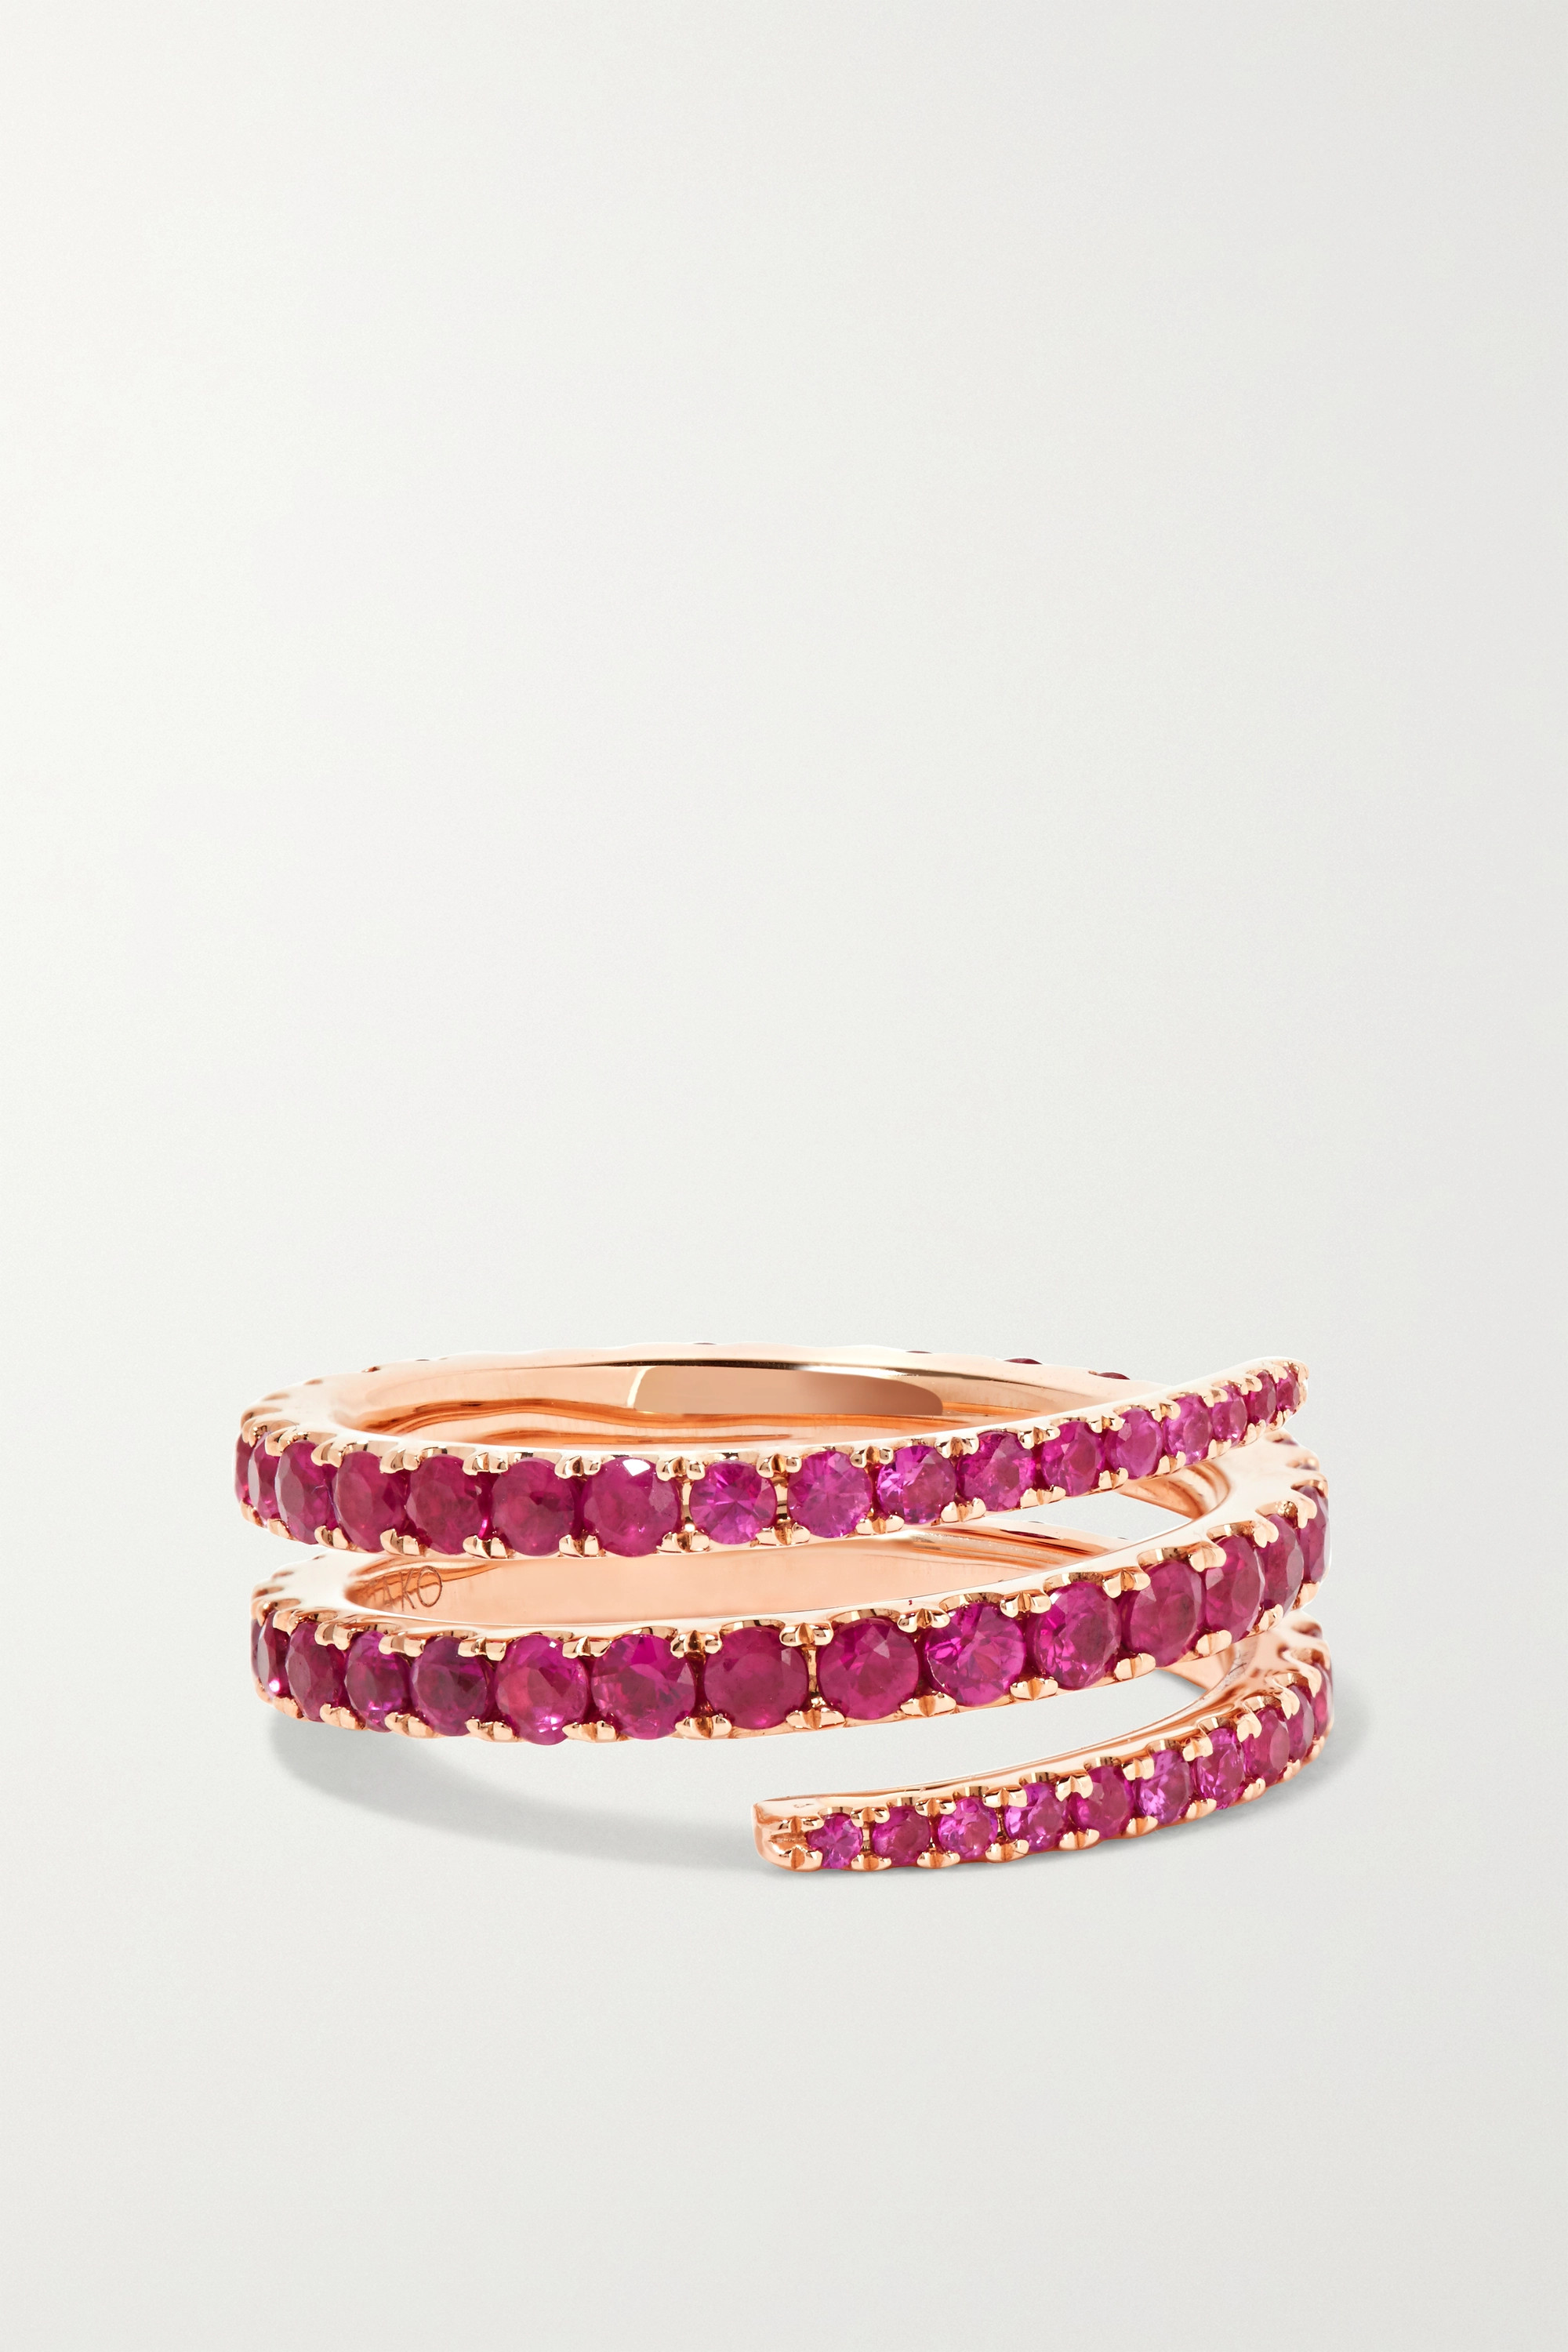 ANITA KO 18-karat rose gold ruby ring